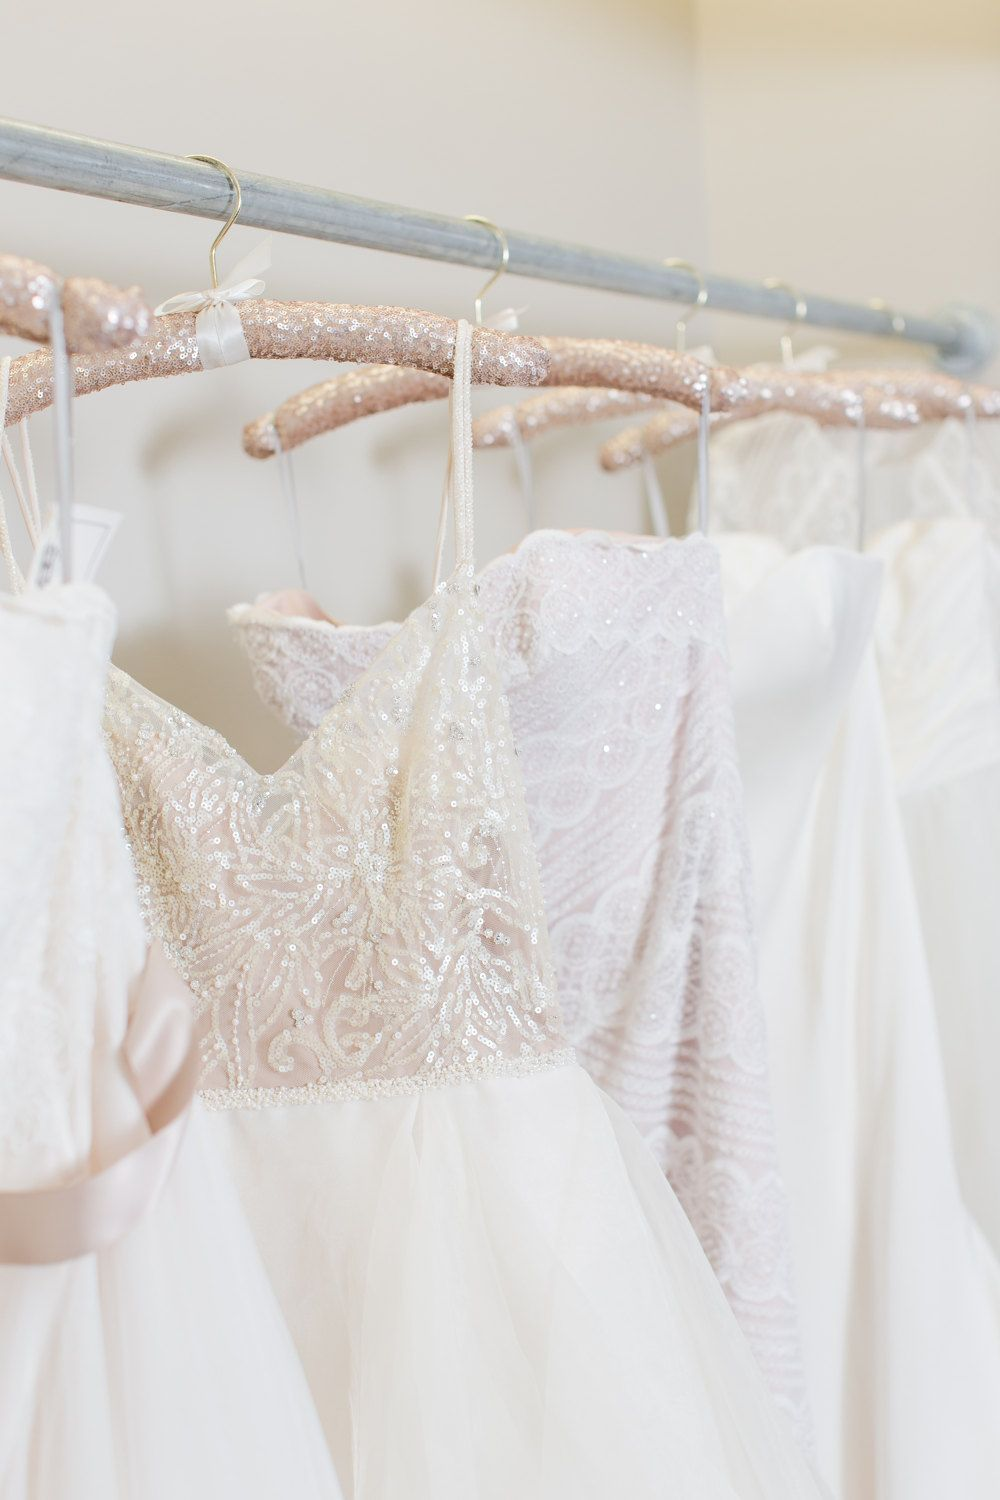 10 Beautiful Wedding Dress Hangers (With images) Pink